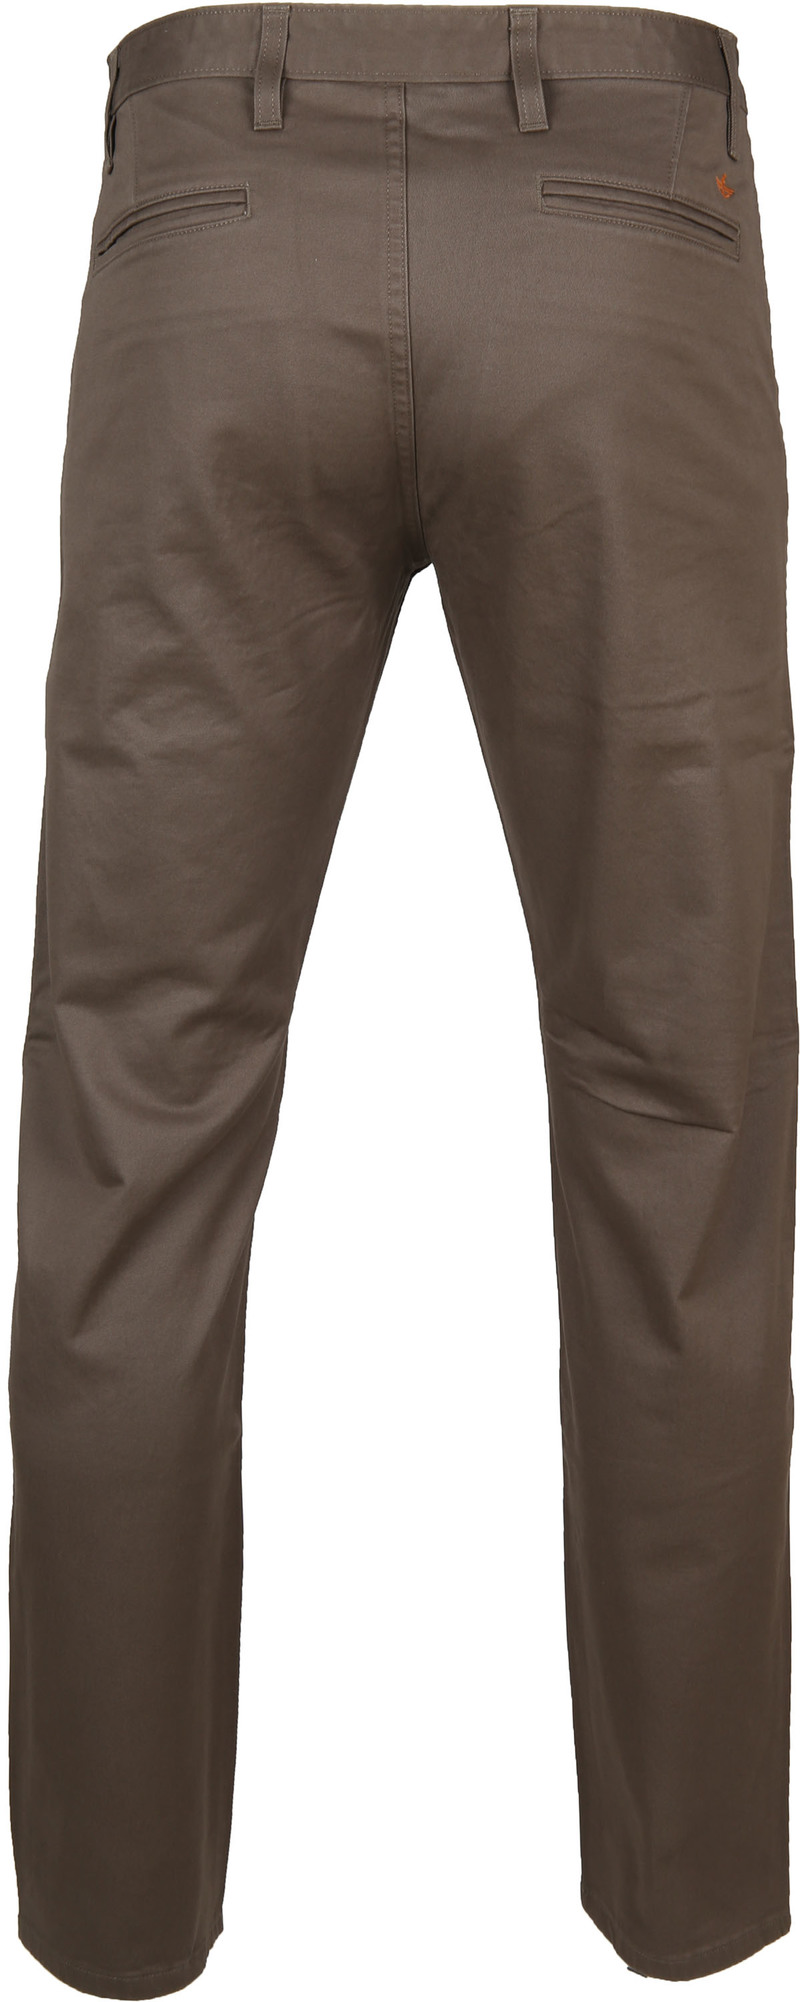 Dockers Alpha Stretch khaki Brown photo 4